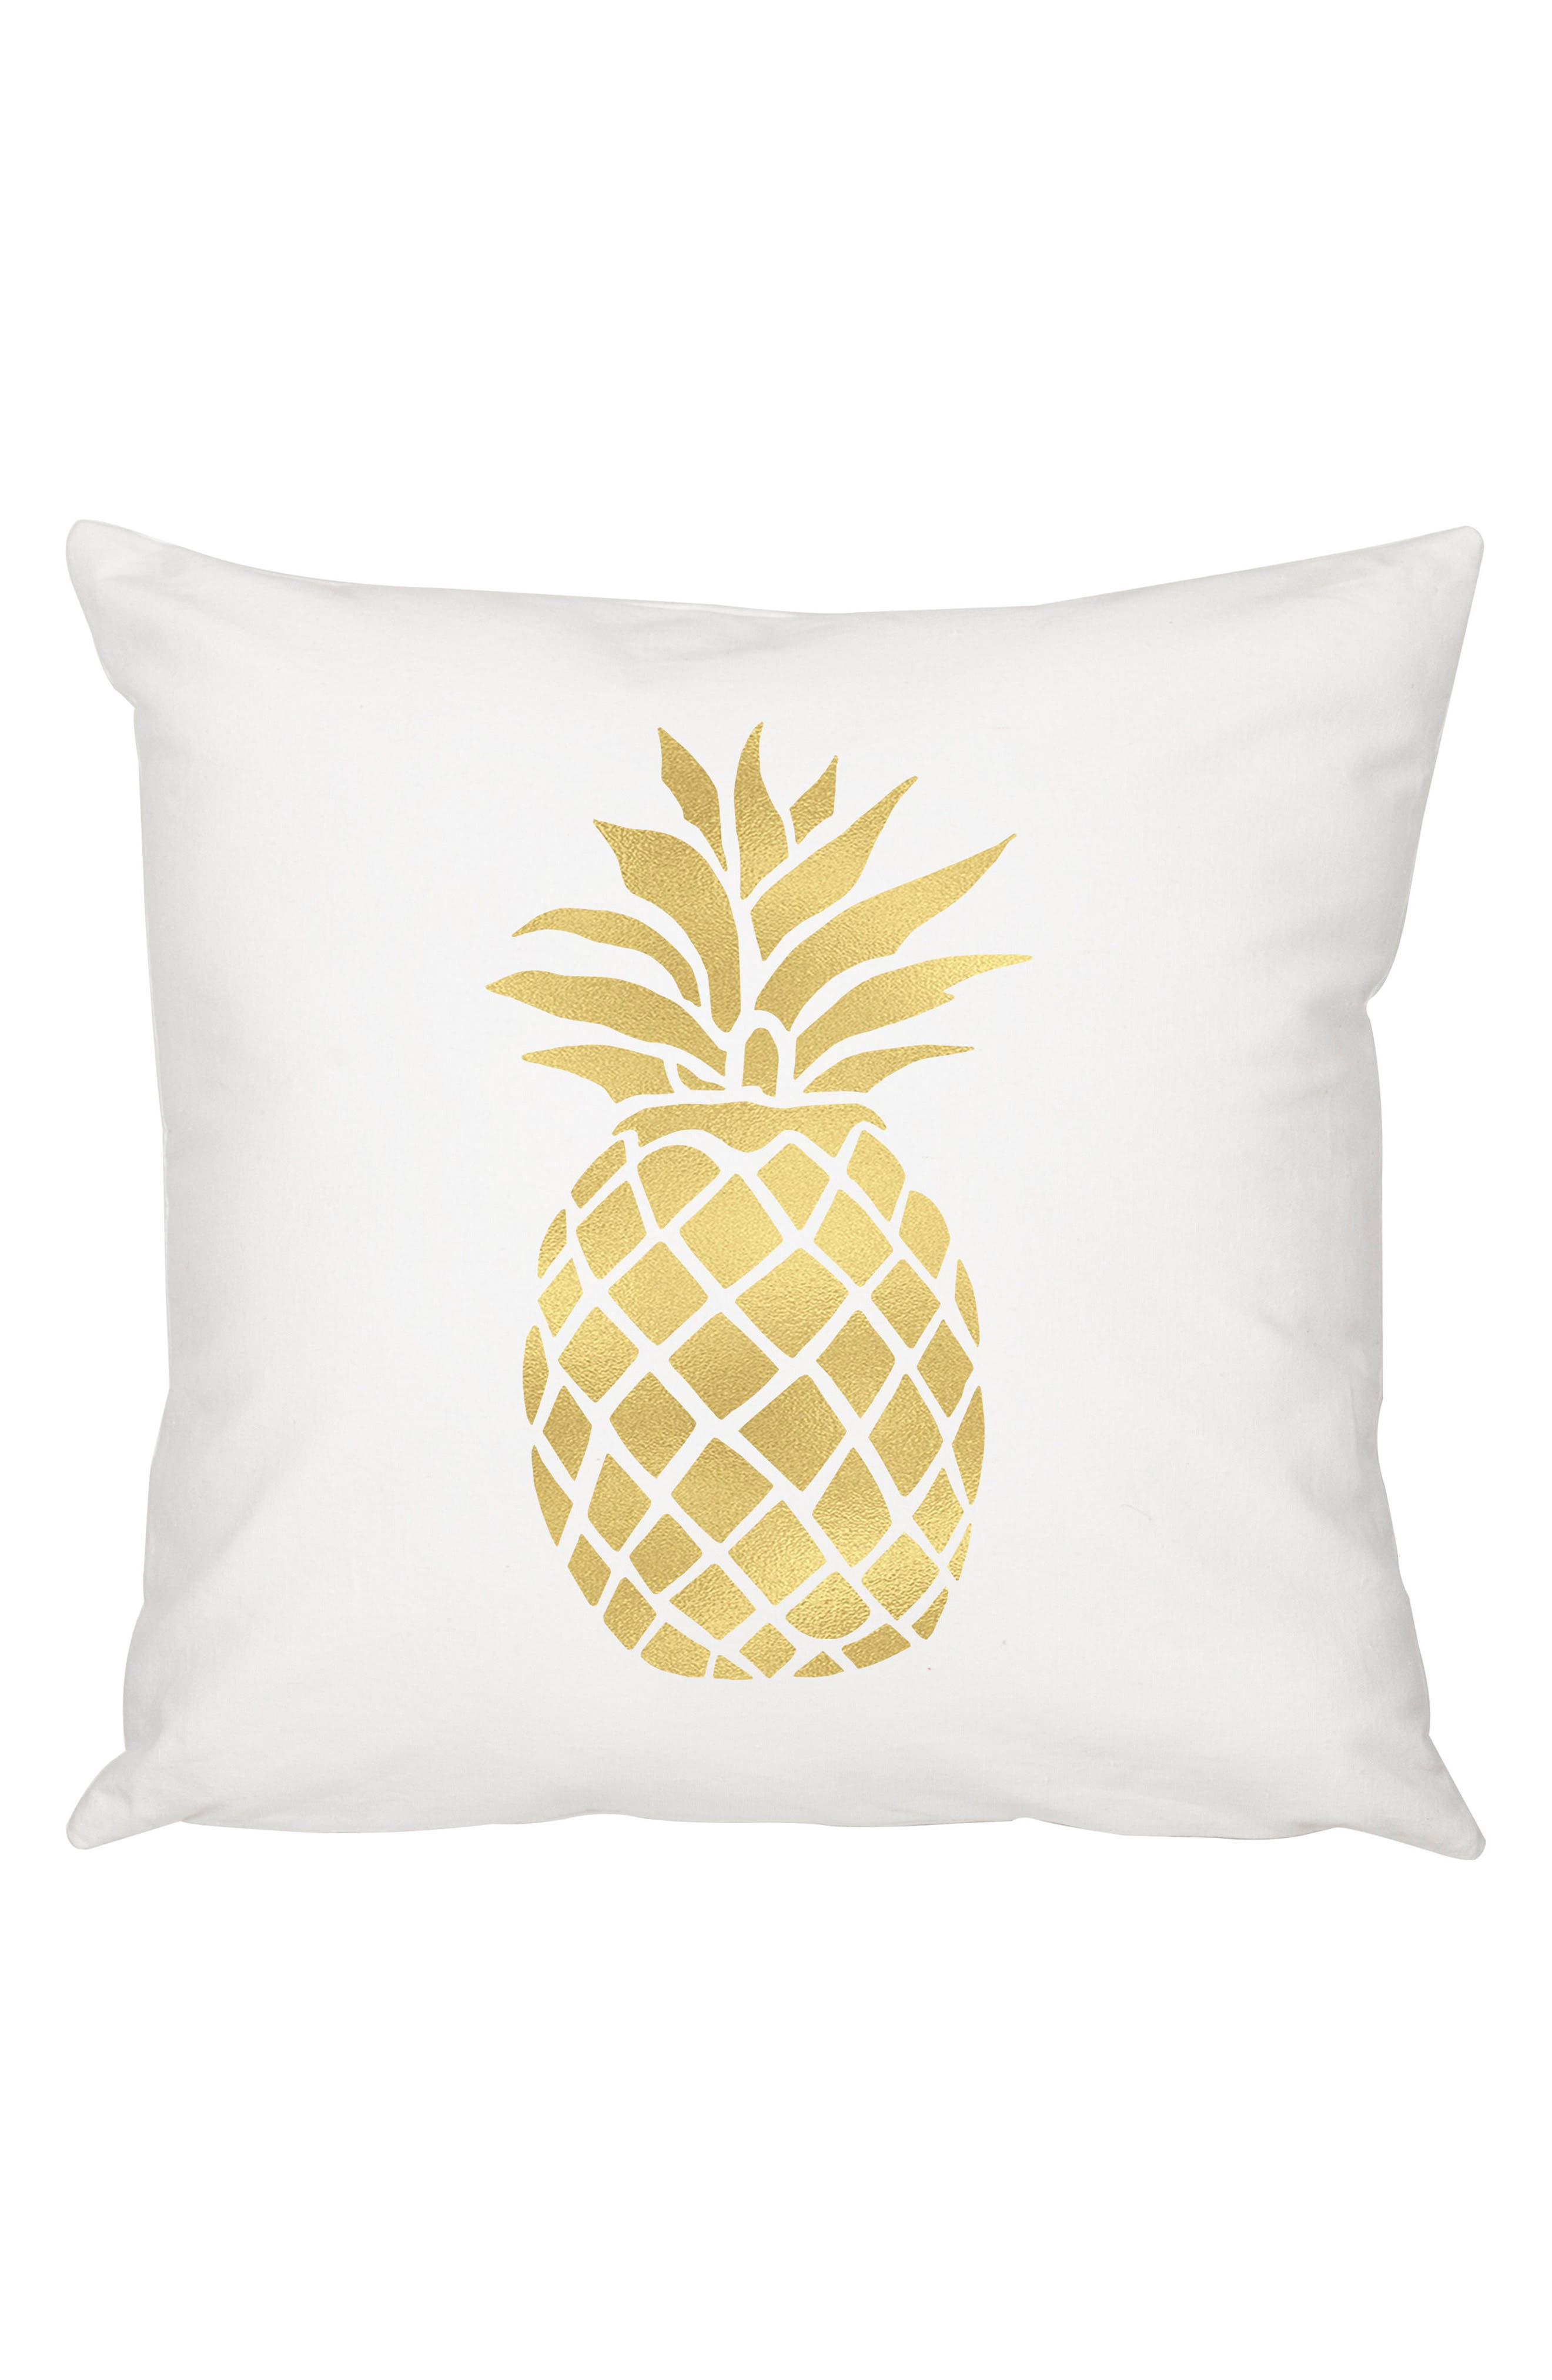 Pineapple Accent Pillow,                             Main thumbnail 1, color,                             GOLD